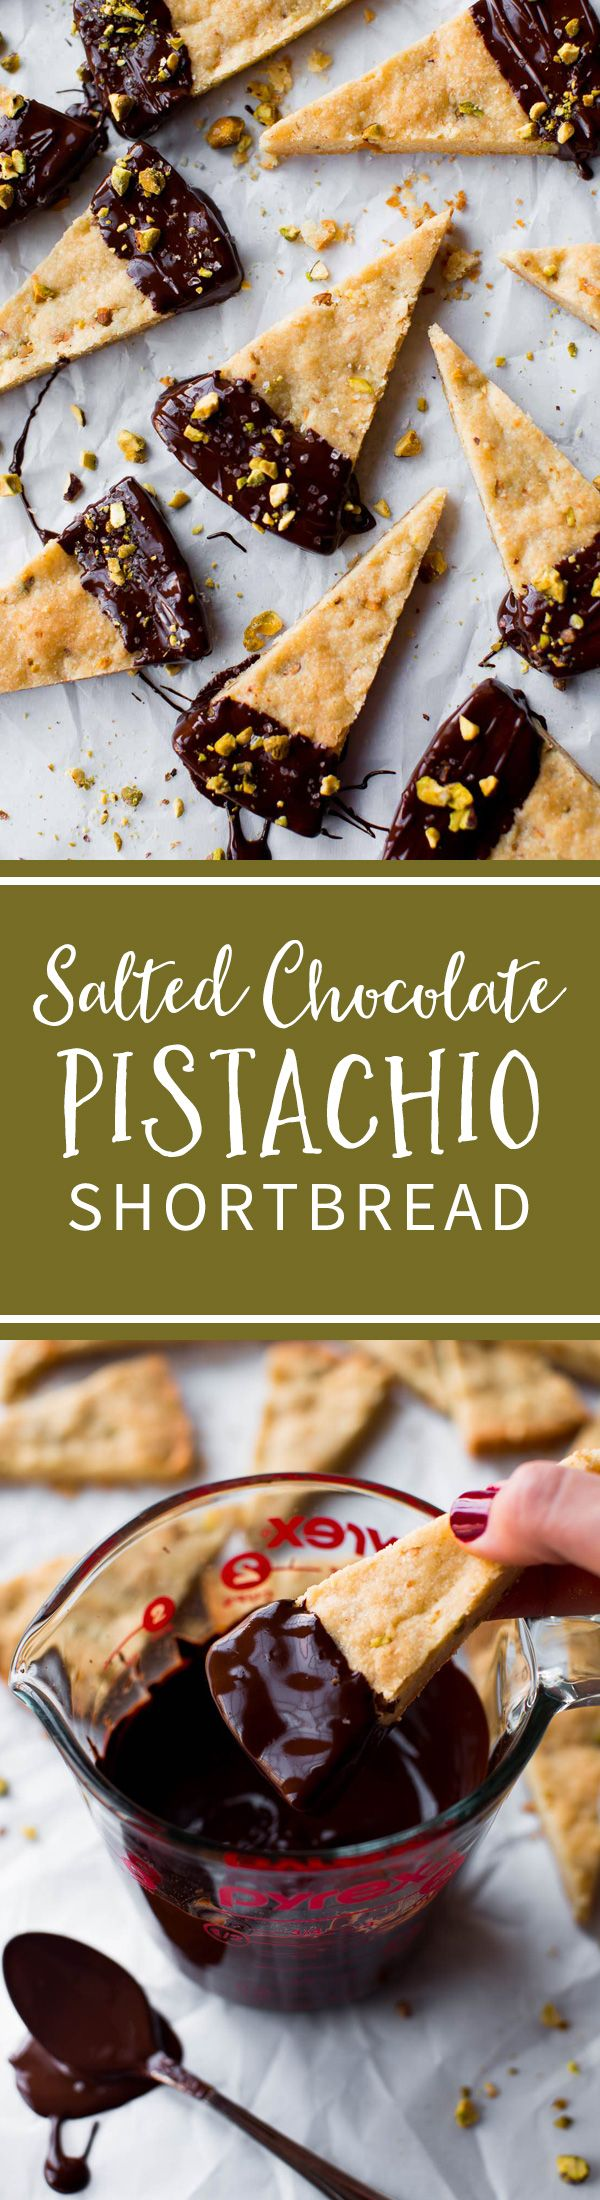 With just a few ingredients, you can turn traditional shortbread into this salted chocolate pistachio shortbread! An easy one bowl dessert recipe on sallysbakingaddiction.com